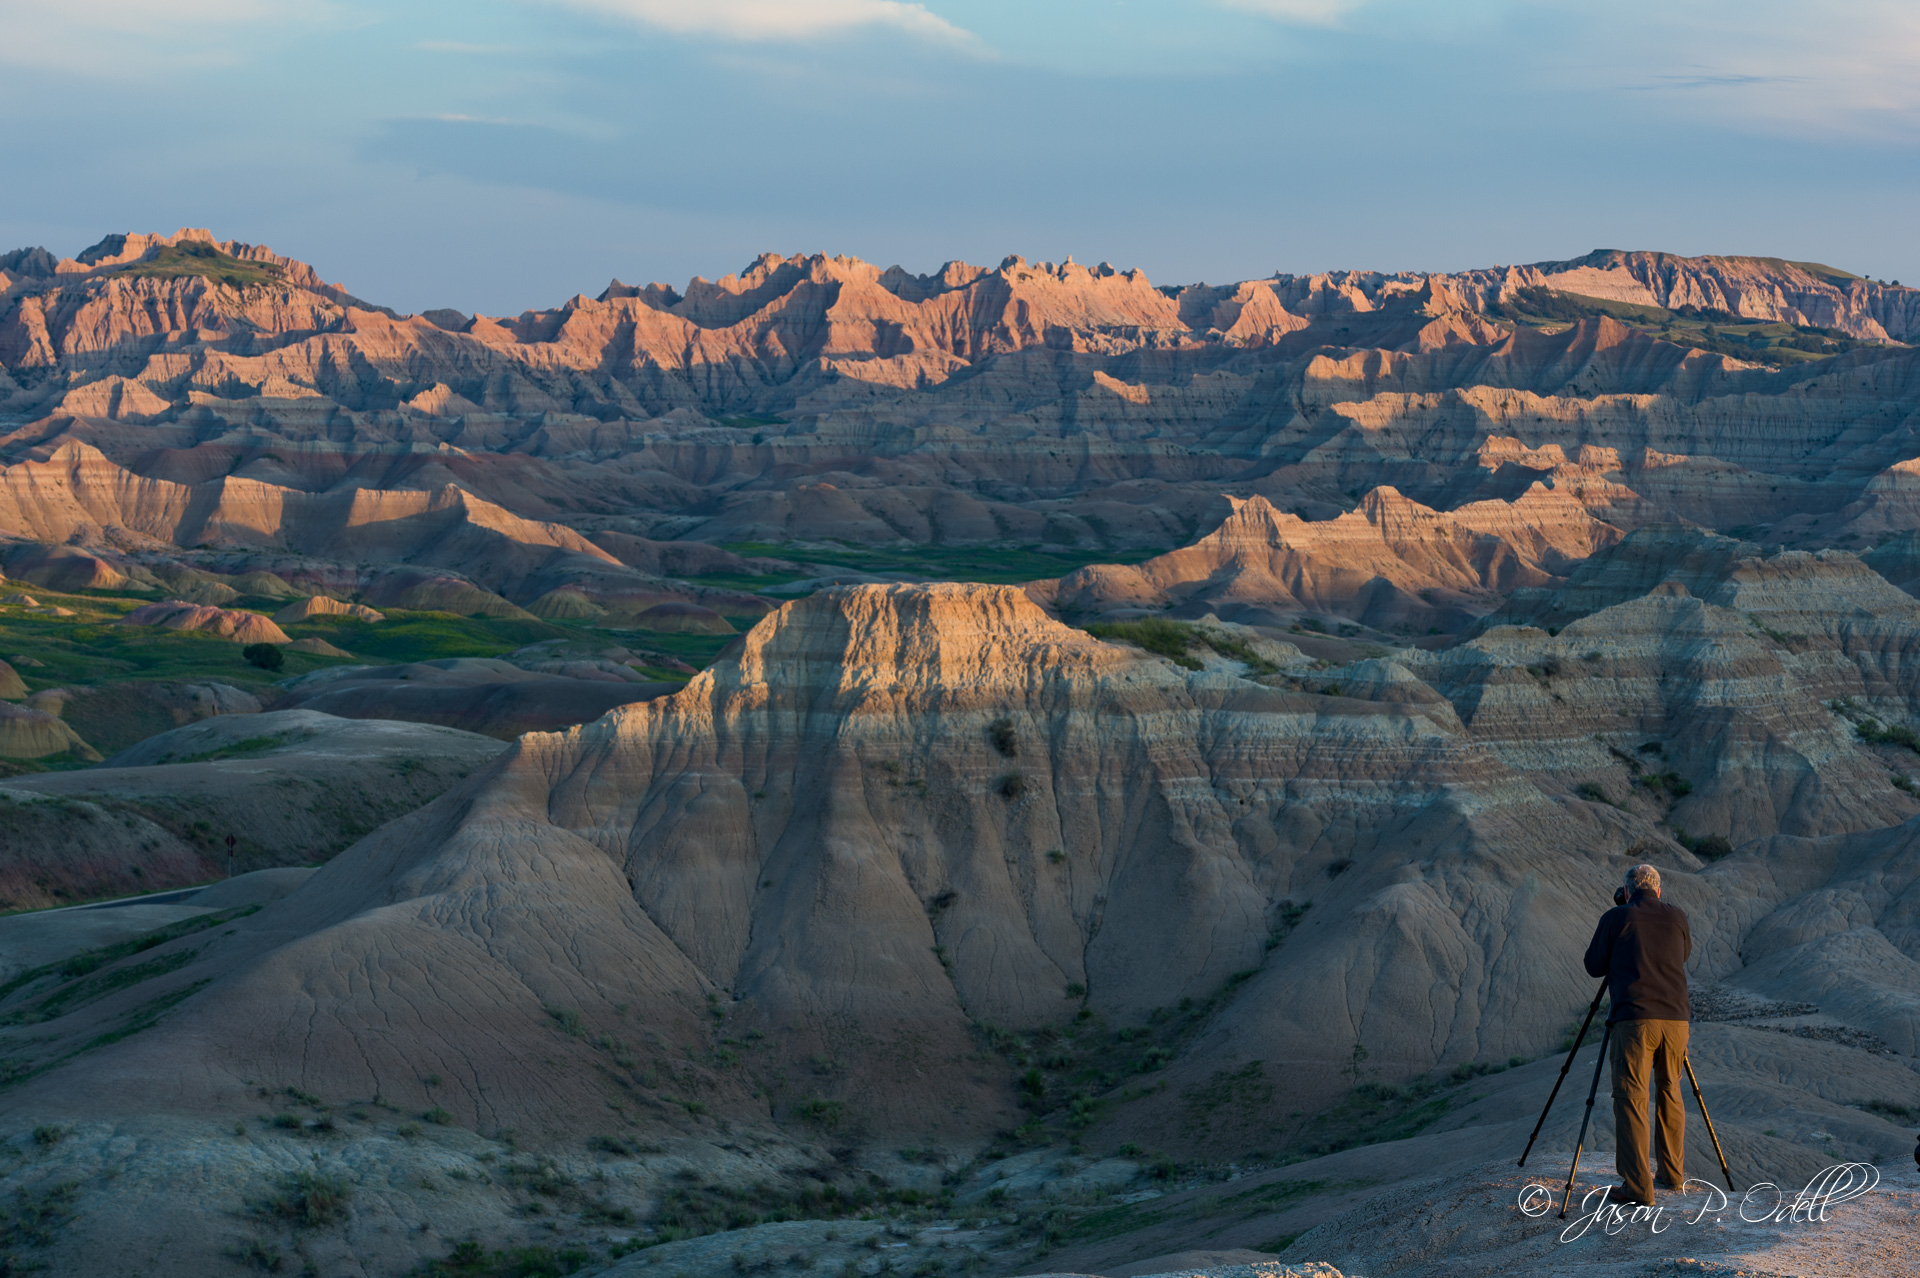 Picture yourself here and imagine the possibilities for amazing photography in South Dakota.